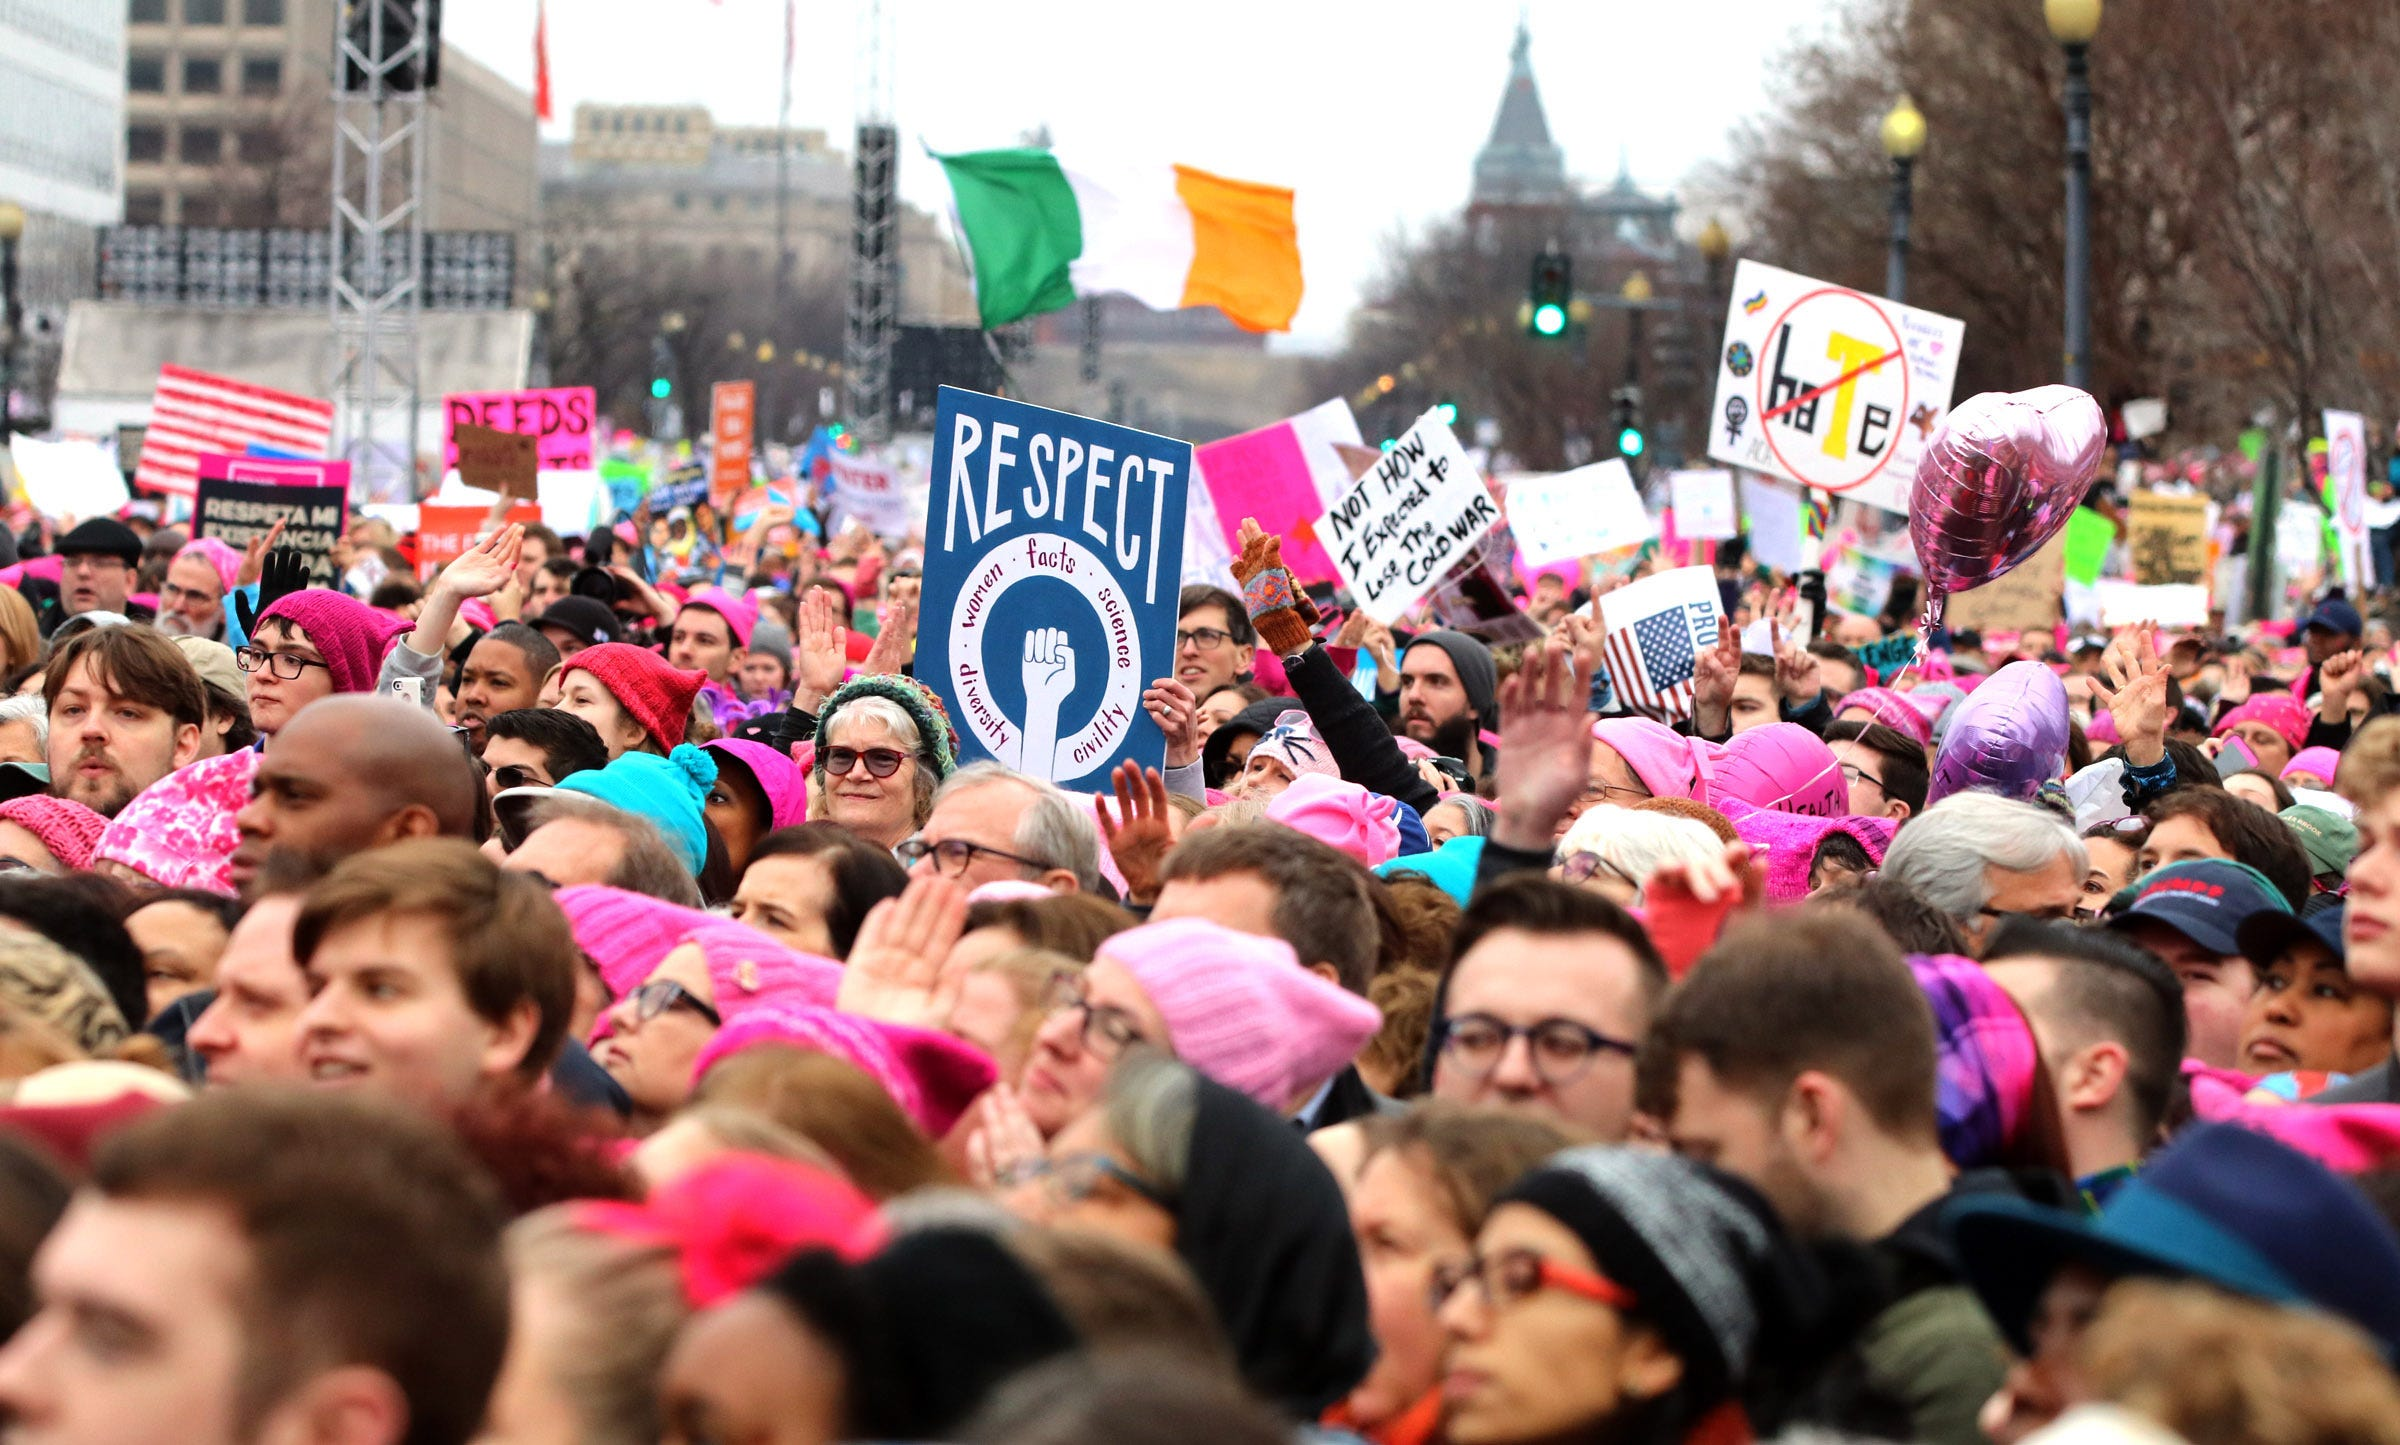 More than a million people attend women's marches worldwide